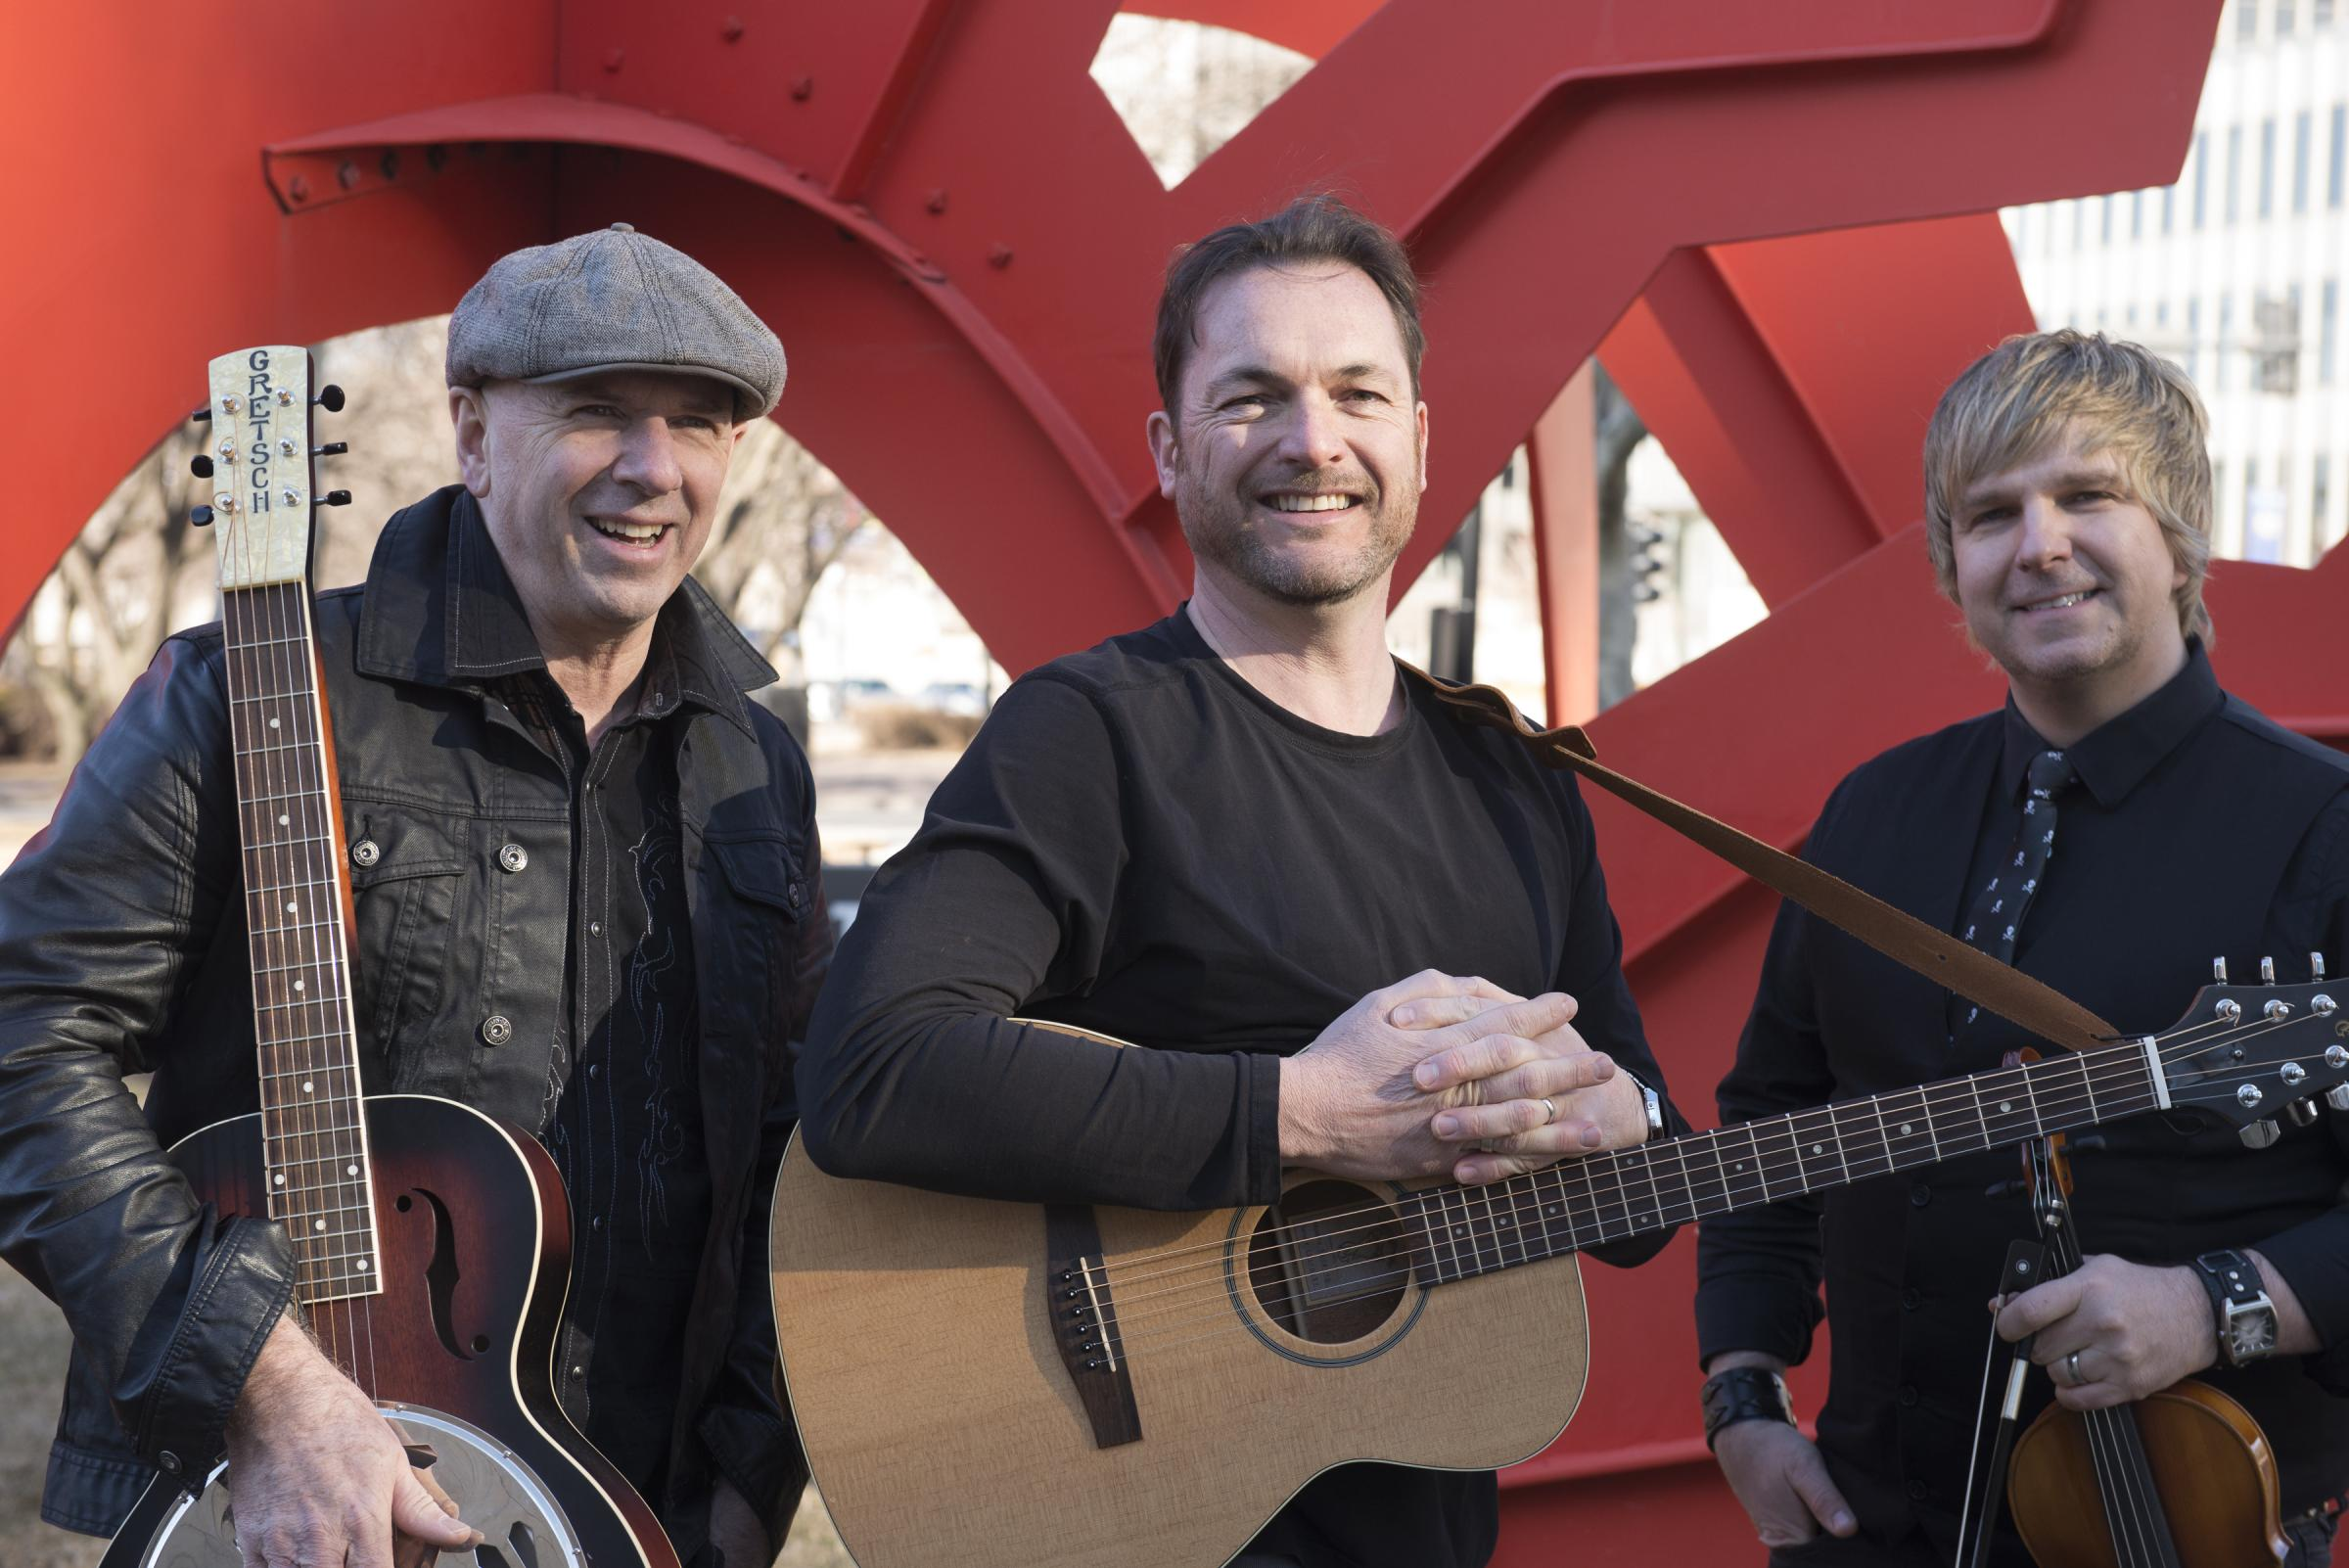 The Chris Ronald Trio will be performing on Tuesday, April 20